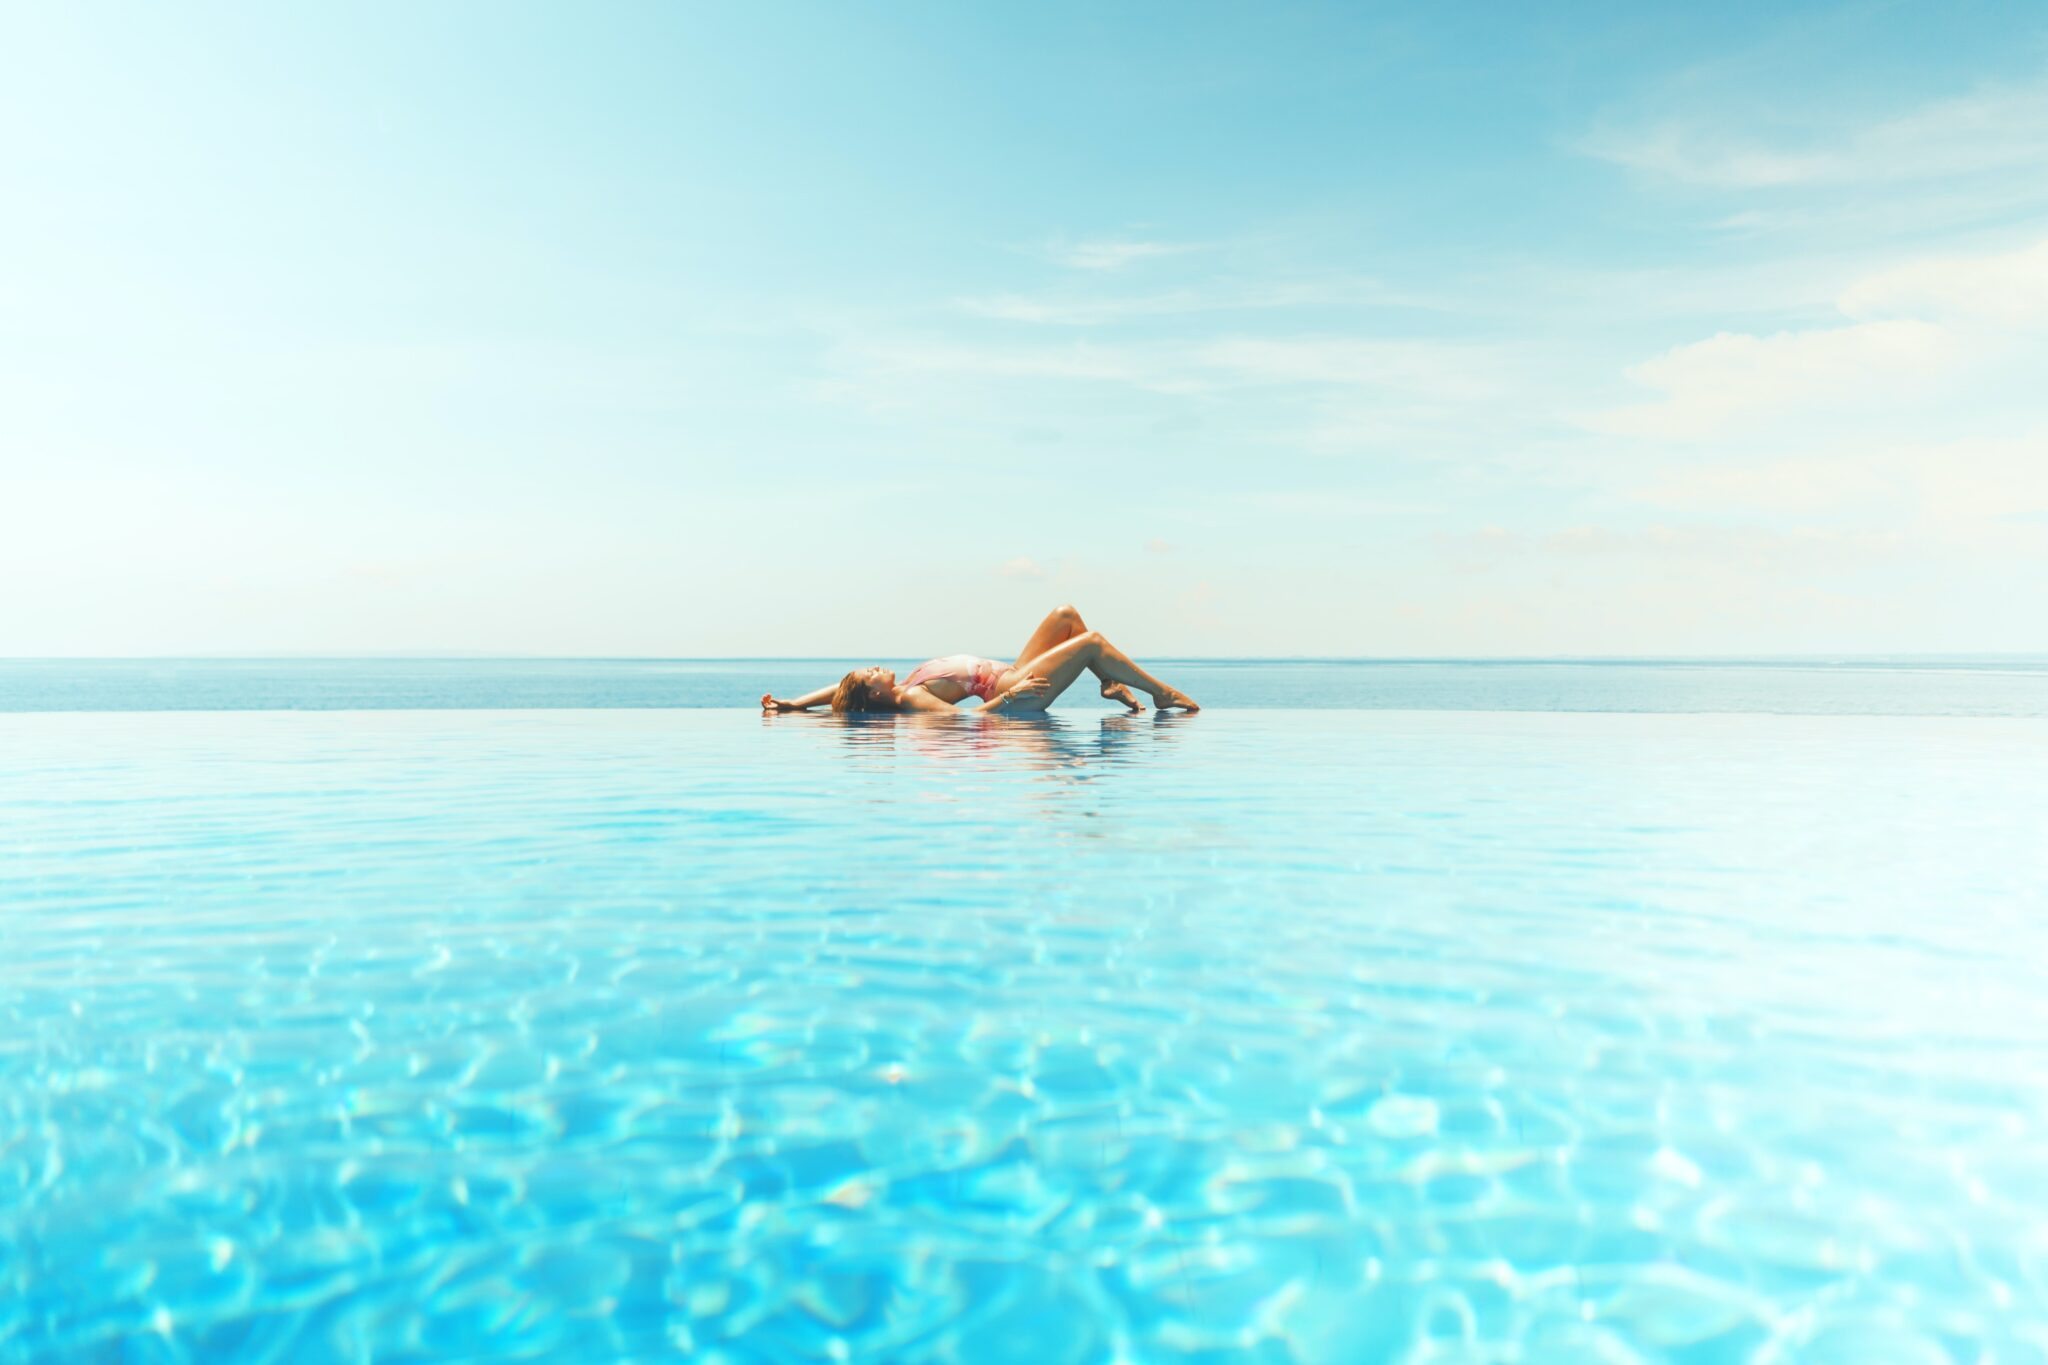 SUMMER IS HERE. AND SO IS COOLSCULPTING ELITE